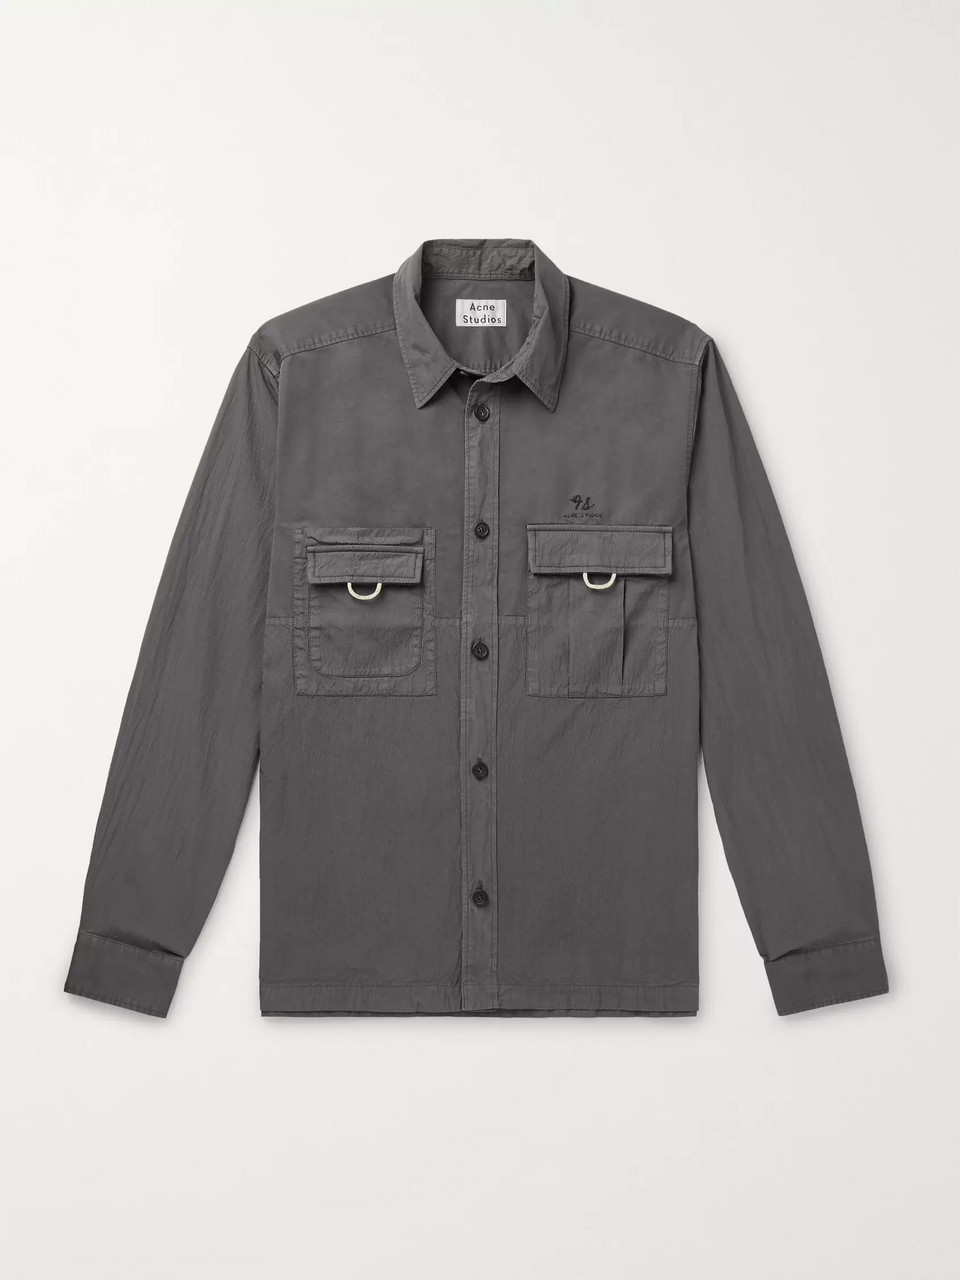 Acne Studios Sandy Cotton-Blend Overshirt